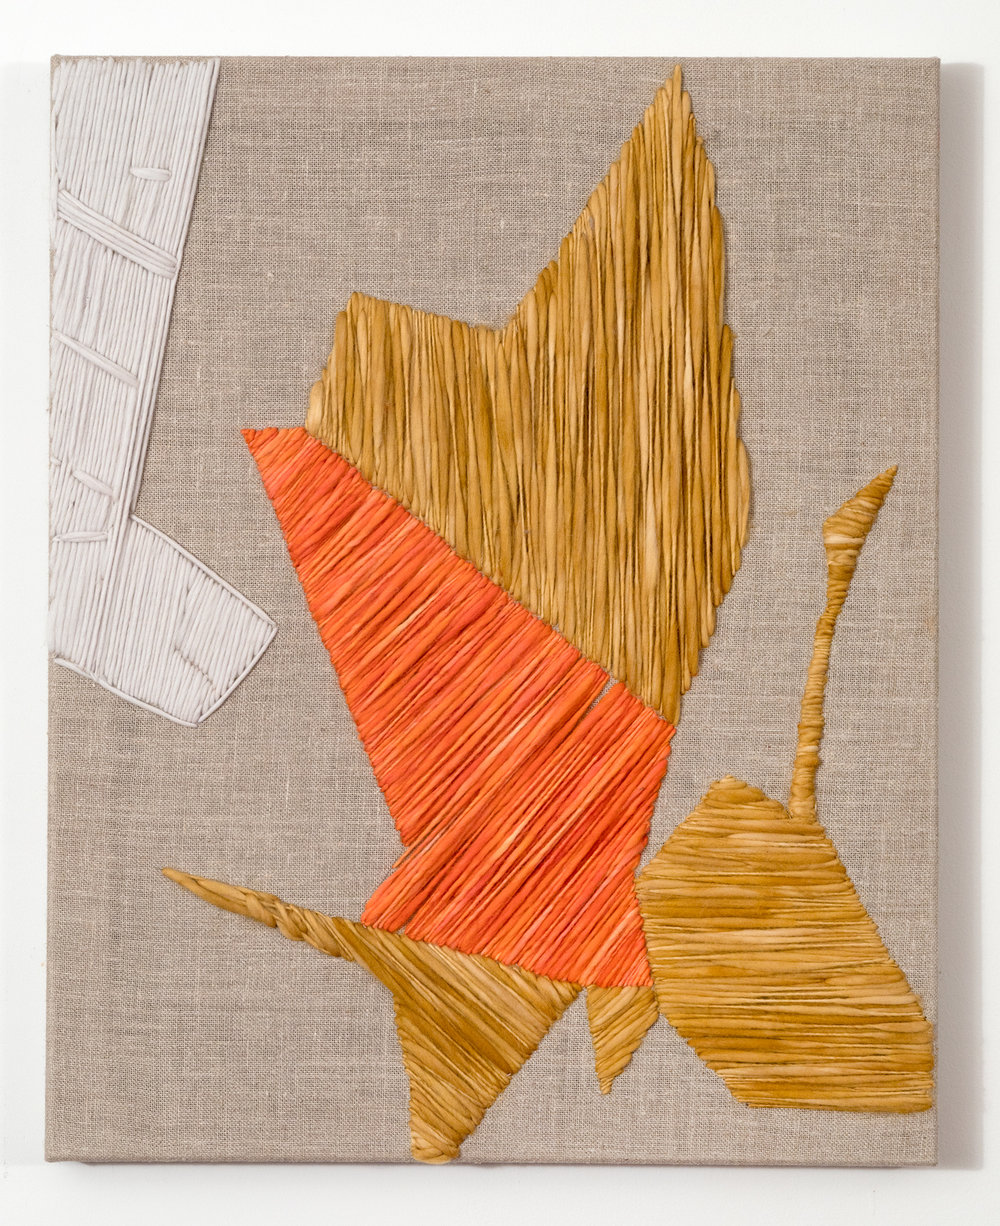 System 11 2017 Wool and Linen on Wood Stretcher 30 x 24 inches